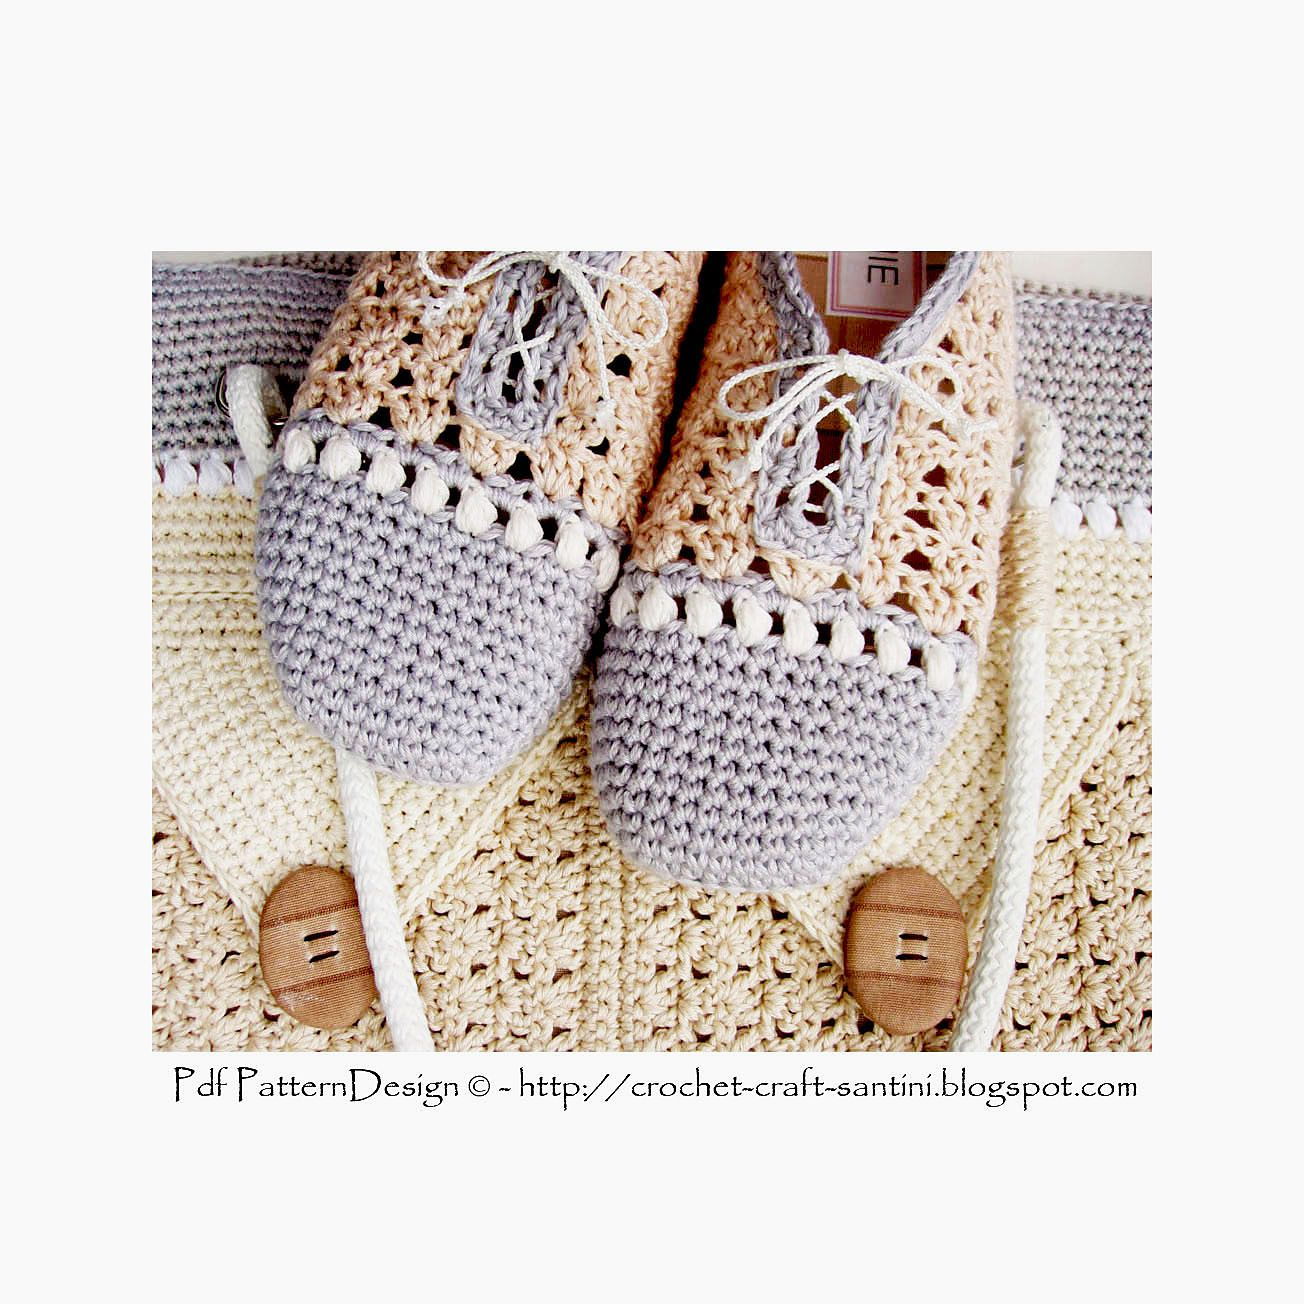 Ravelry: Pearl-Slippers - Basic Crochet Pattern by Sophie and Me ...